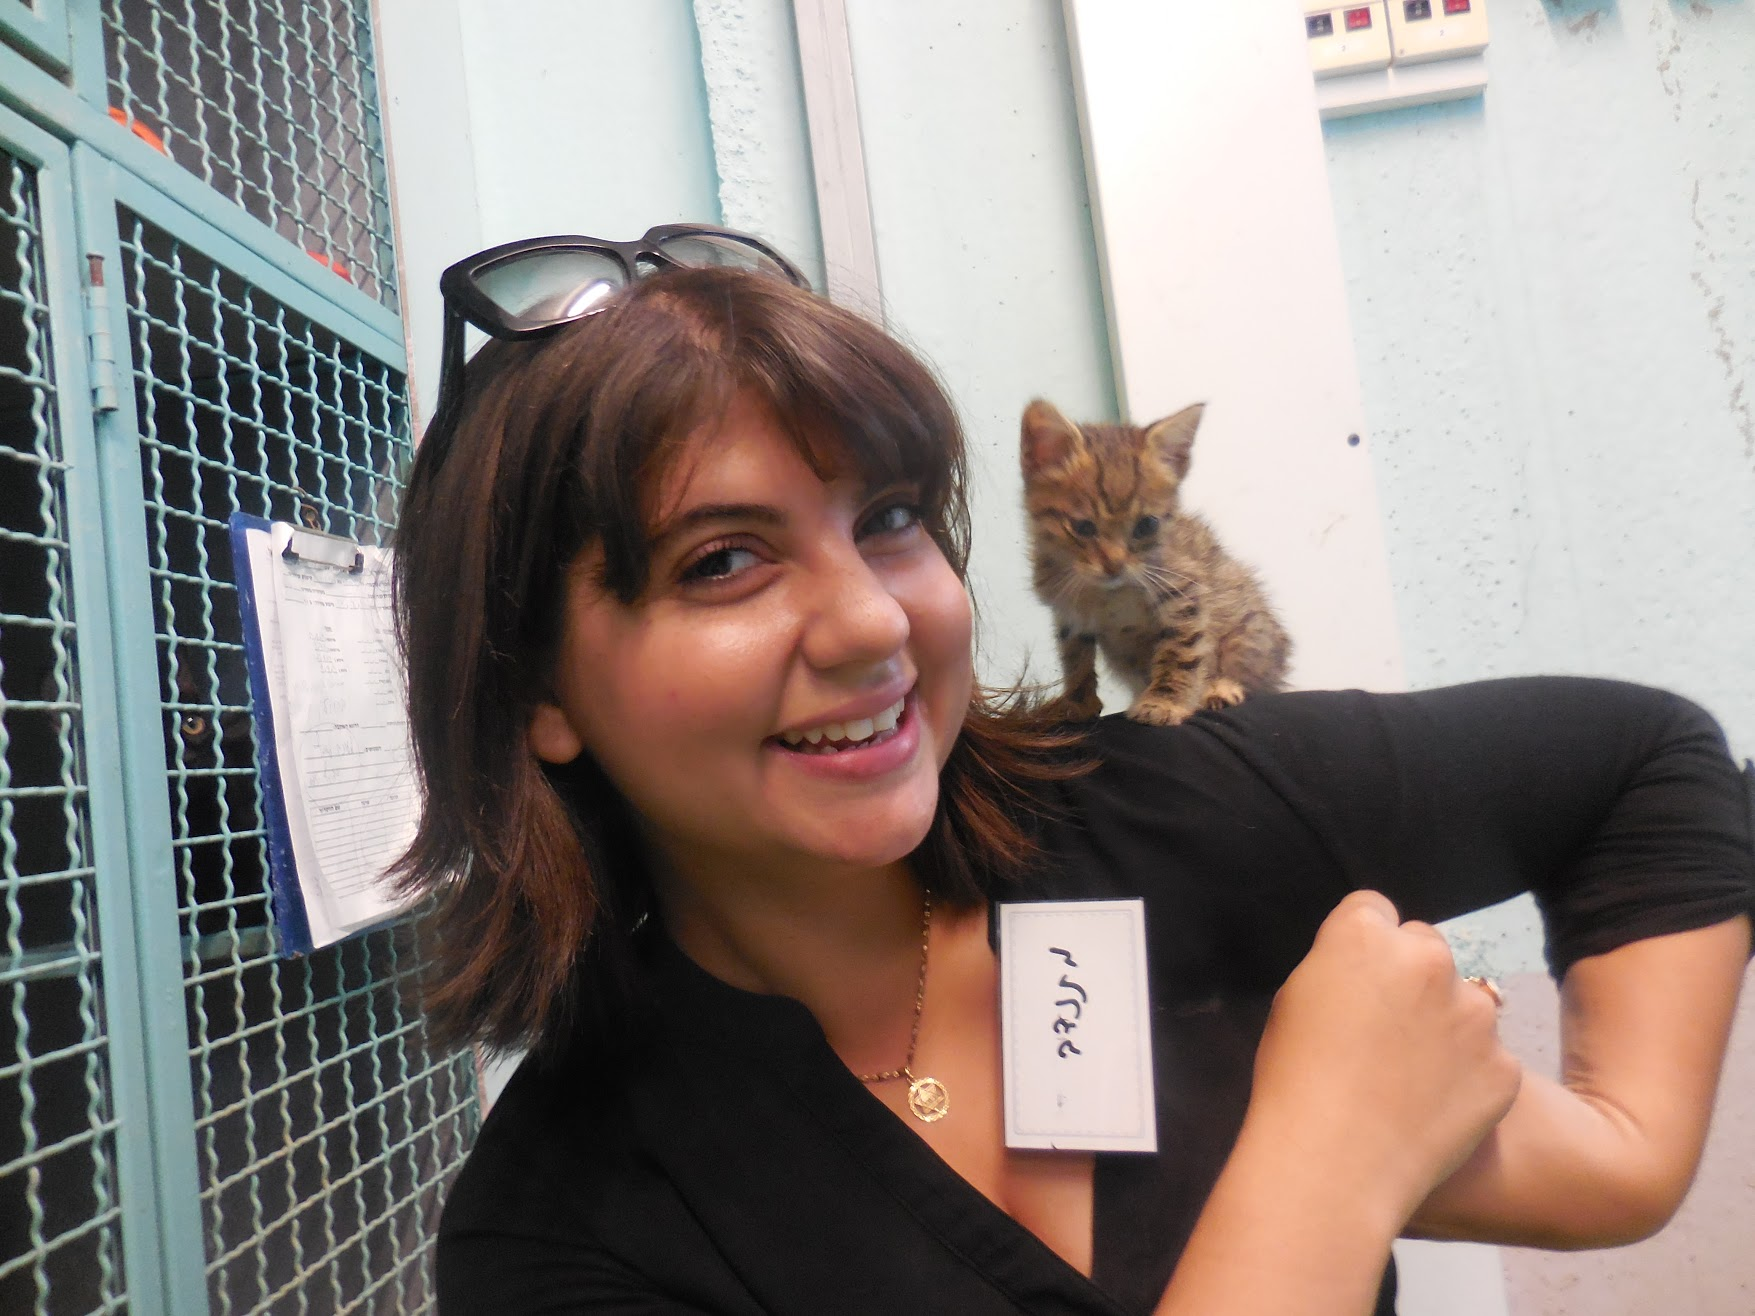 (photo: Danielle, Volunteer at SPCA Animal Shelter)